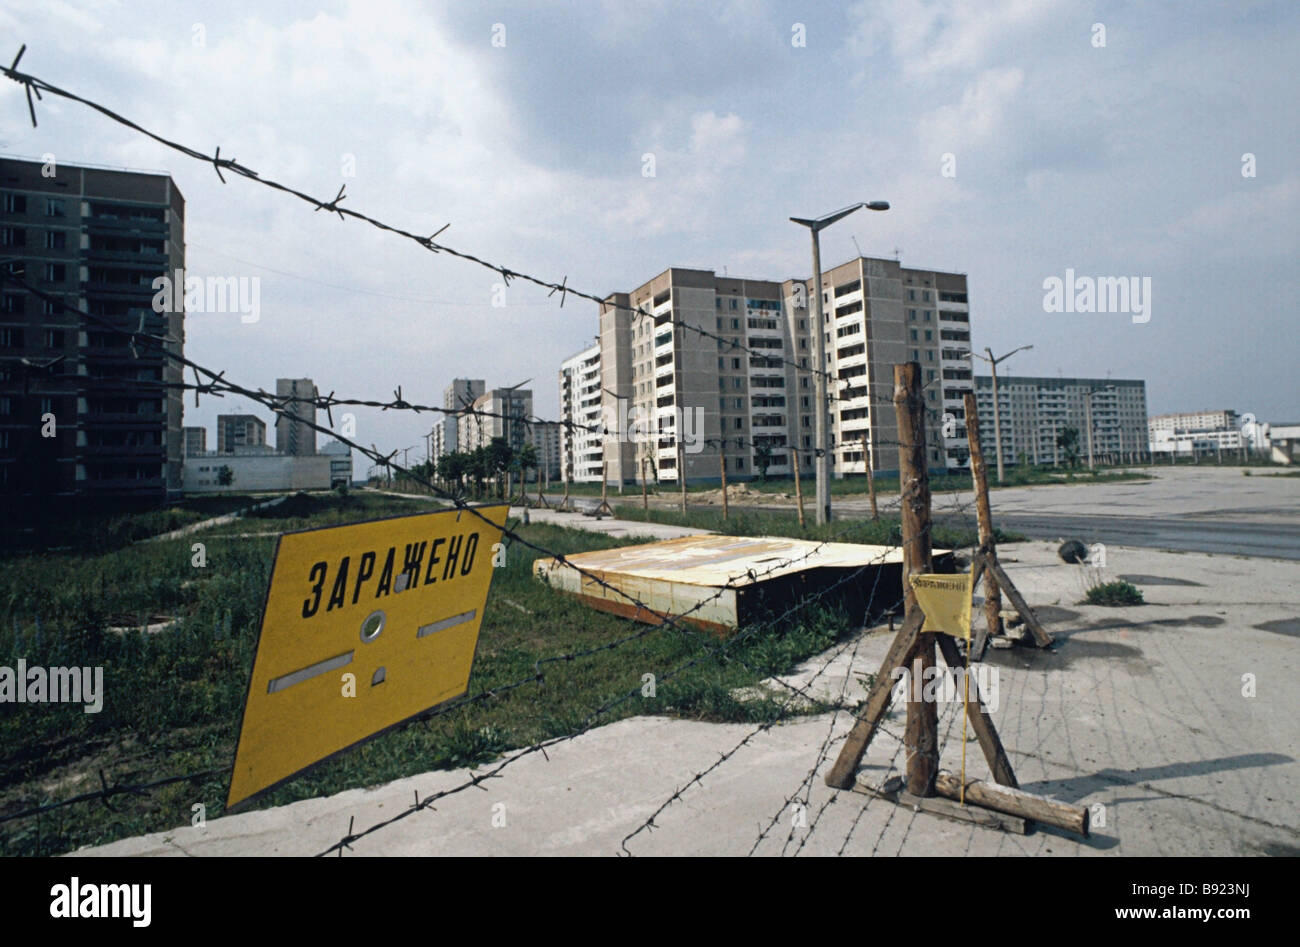 Barbed wire entanglement in a street of Pripyat near Kiev after the Chernobyl nuclear plant disaster of April 26 - Stock Image